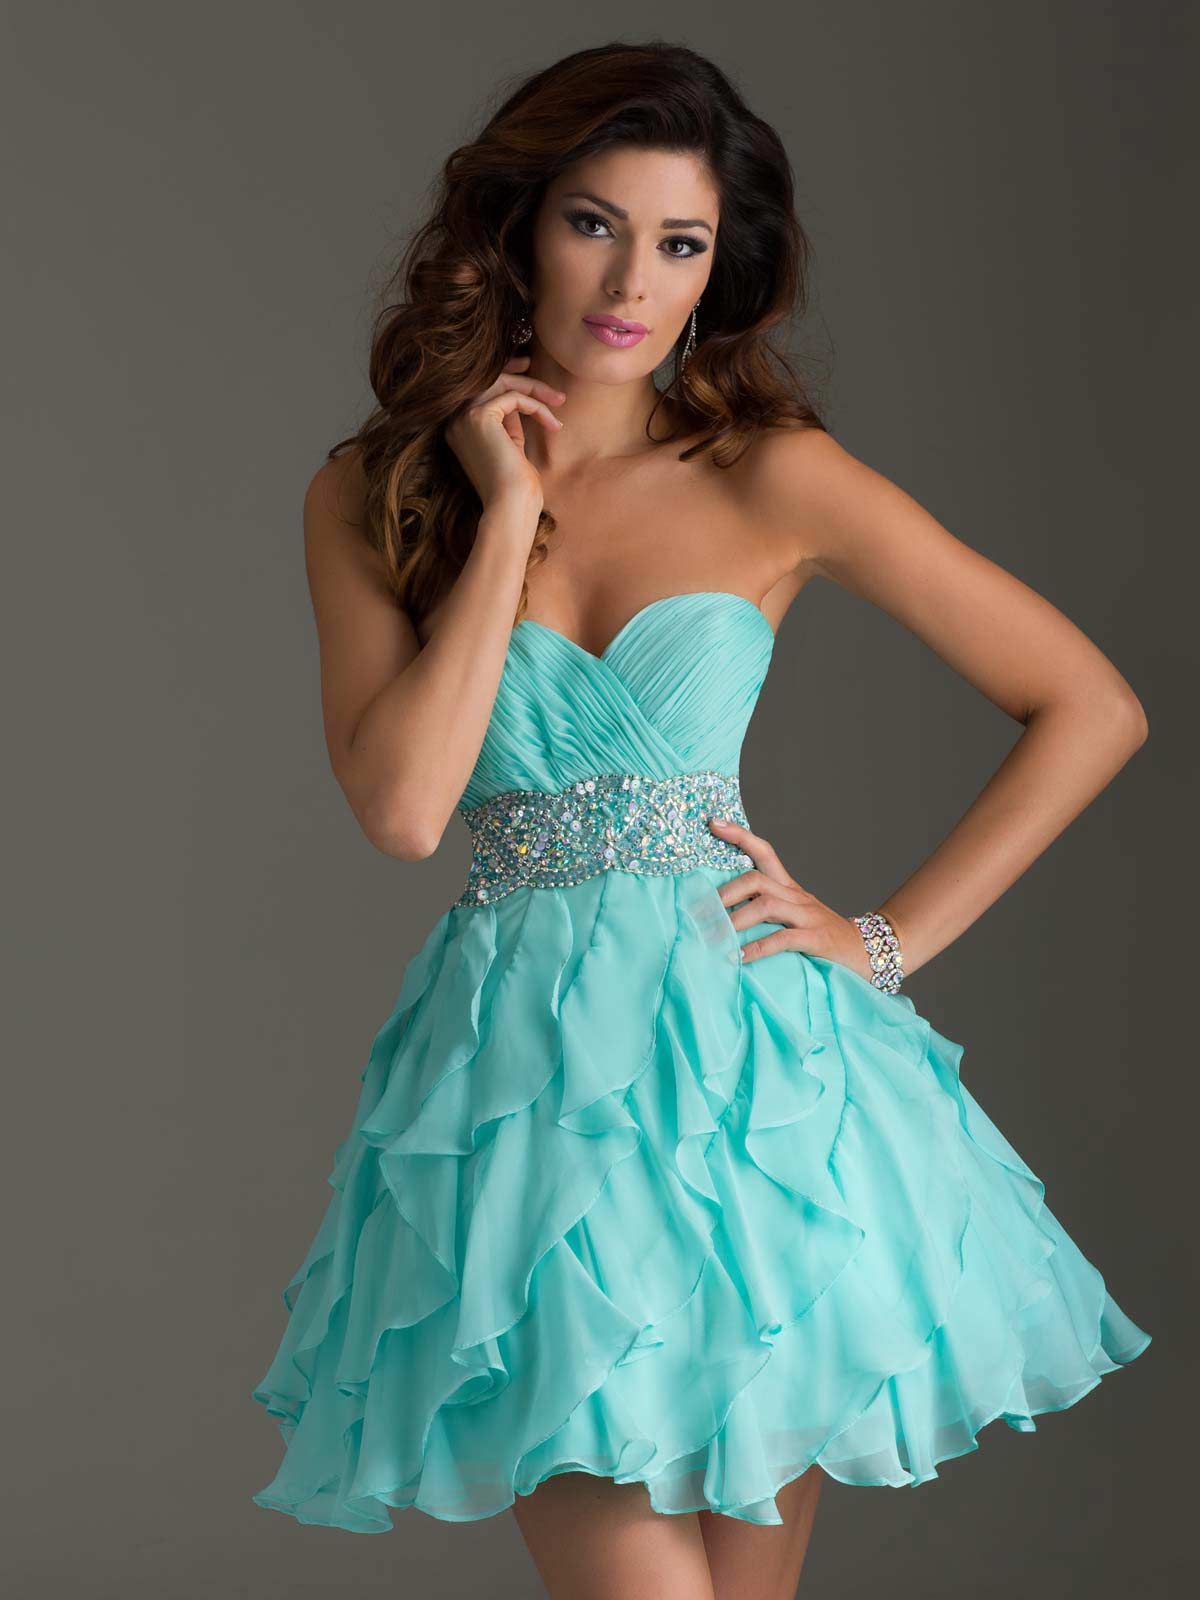 Fashion style Homecoming Teen dresses for girls